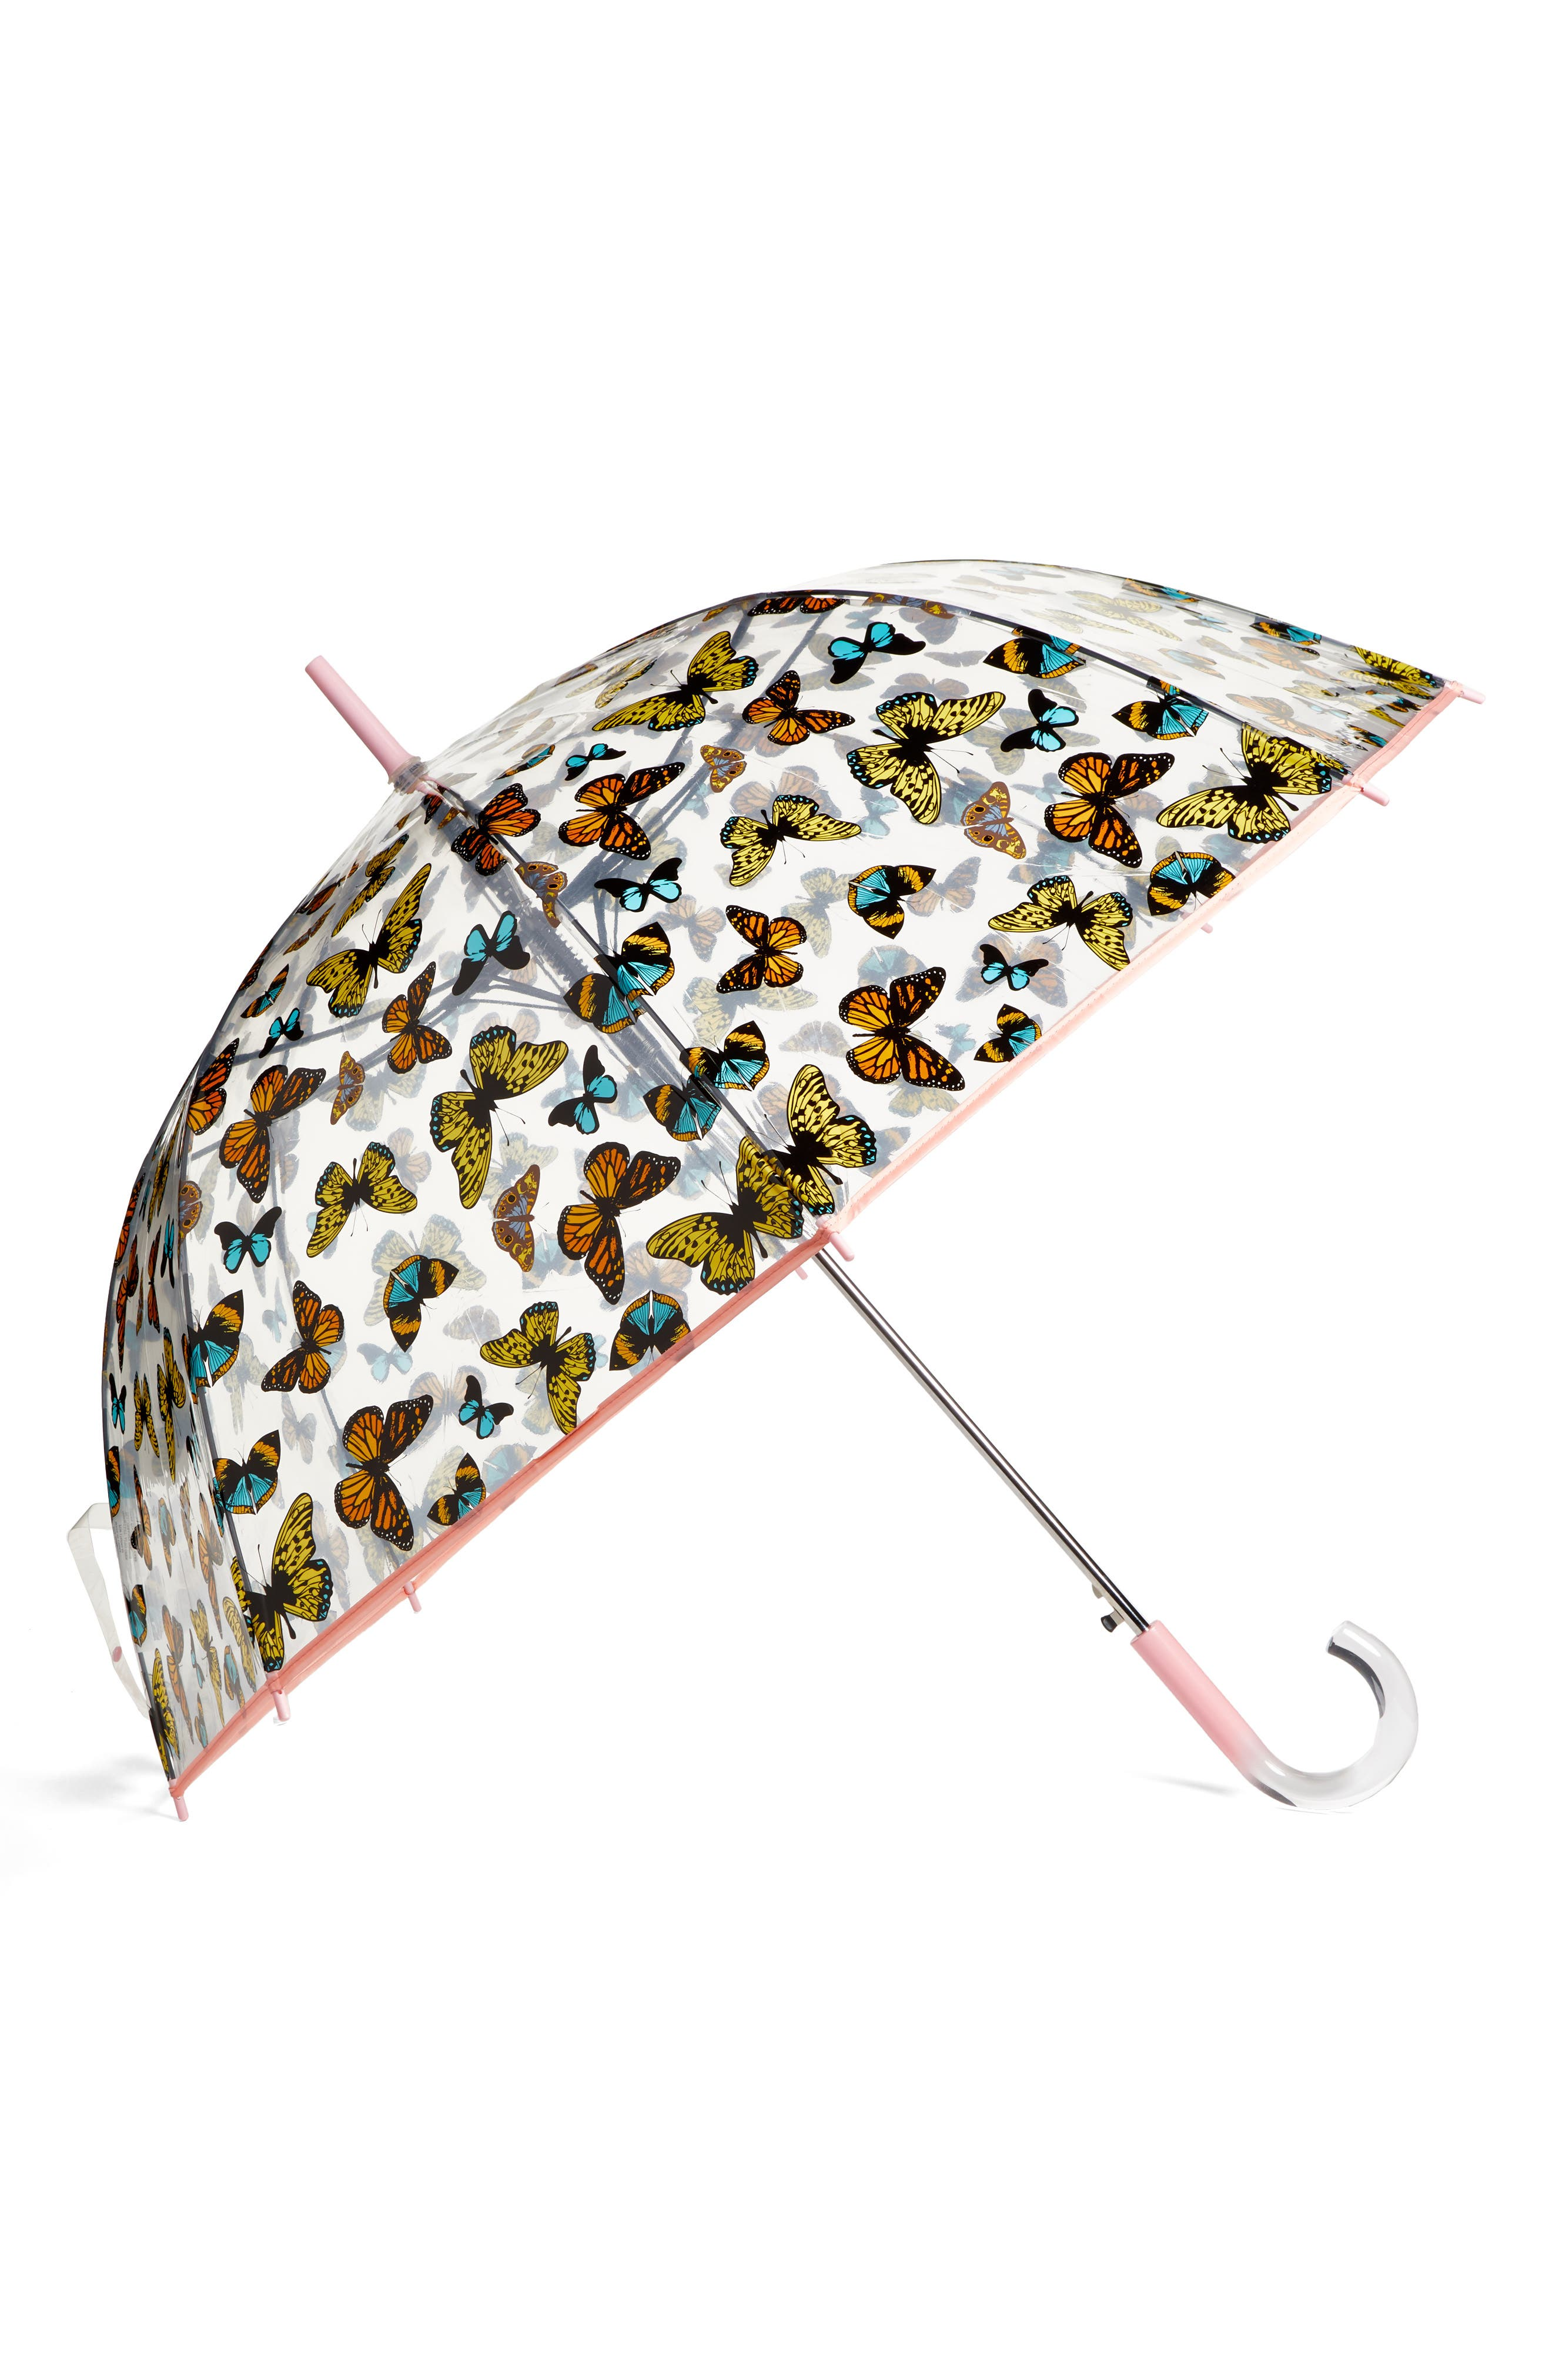 'The Bubble' Auto Open Stick Umbrella,                             Main thumbnail 1, color,                             Nord Butterfly